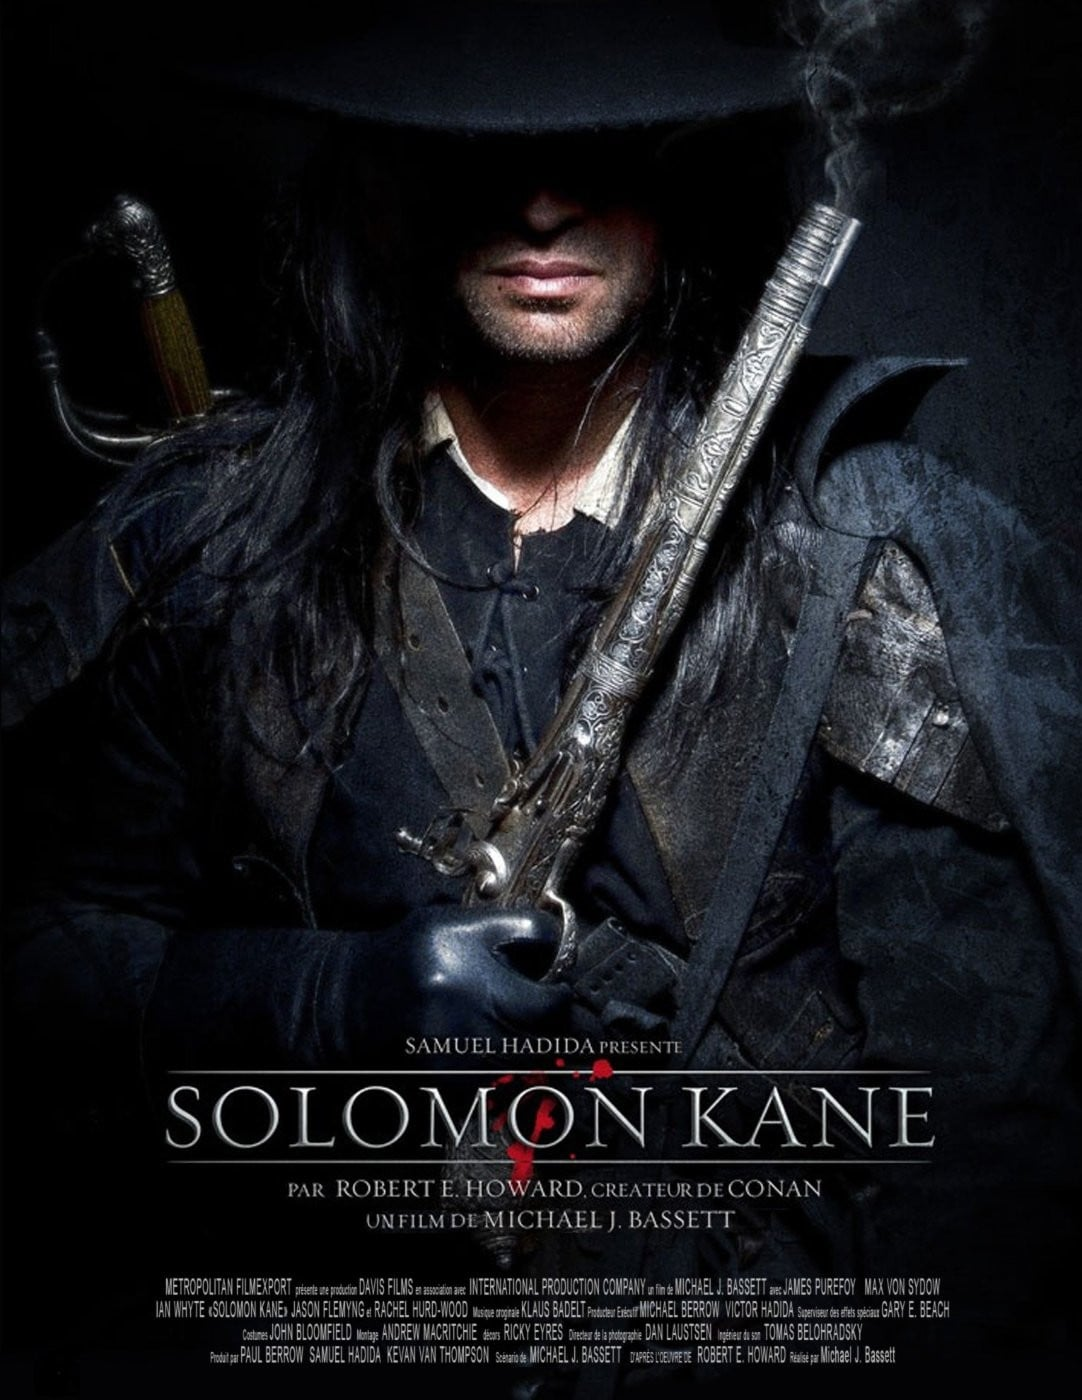 You are currently viewing Notes On A Film: Solomon Kane